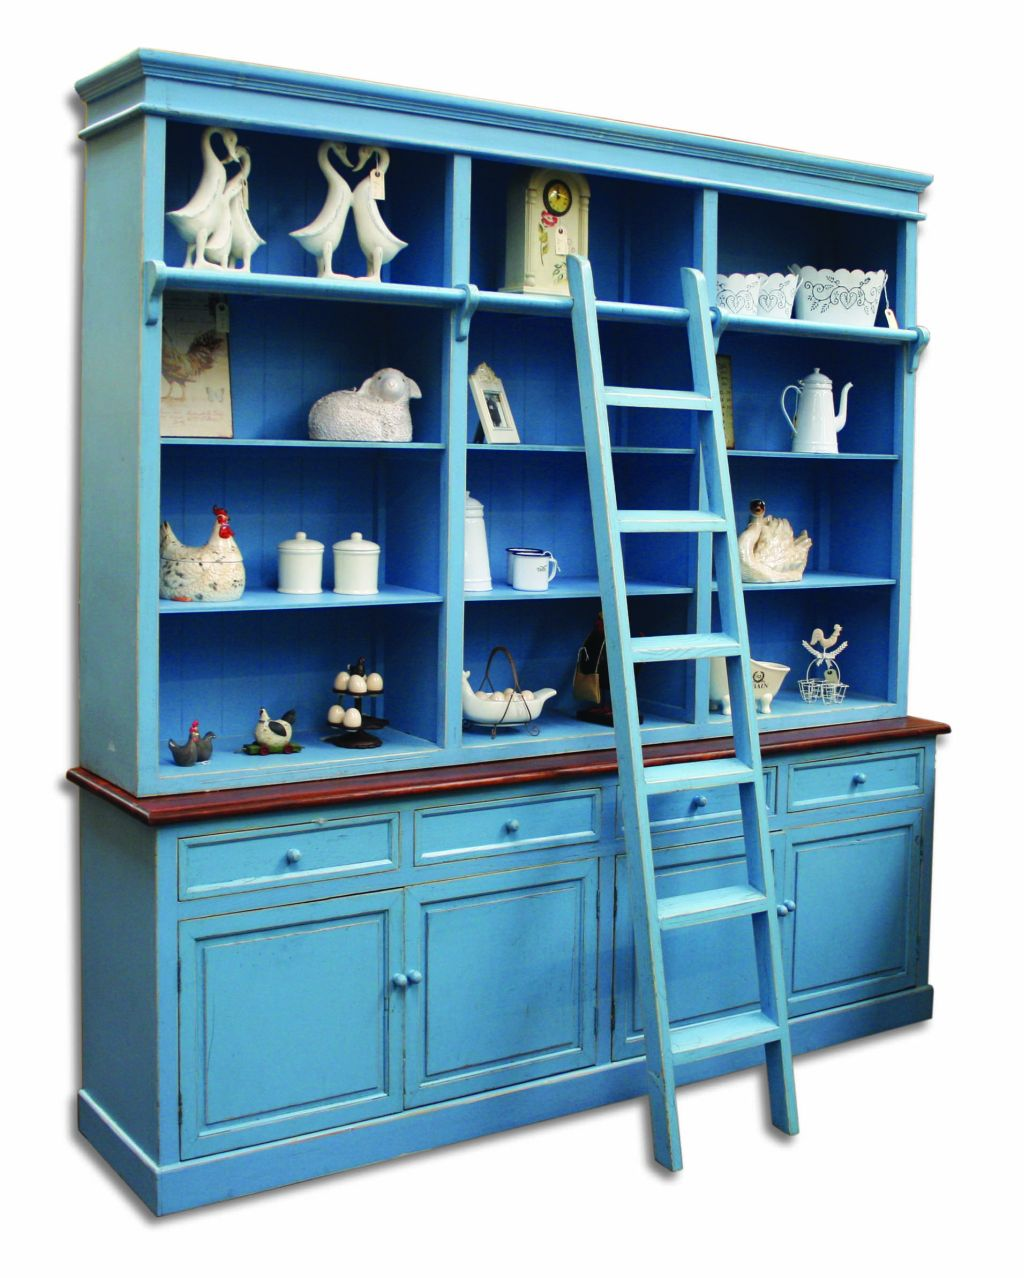 bordeaux blue painted furniture large bookcase display